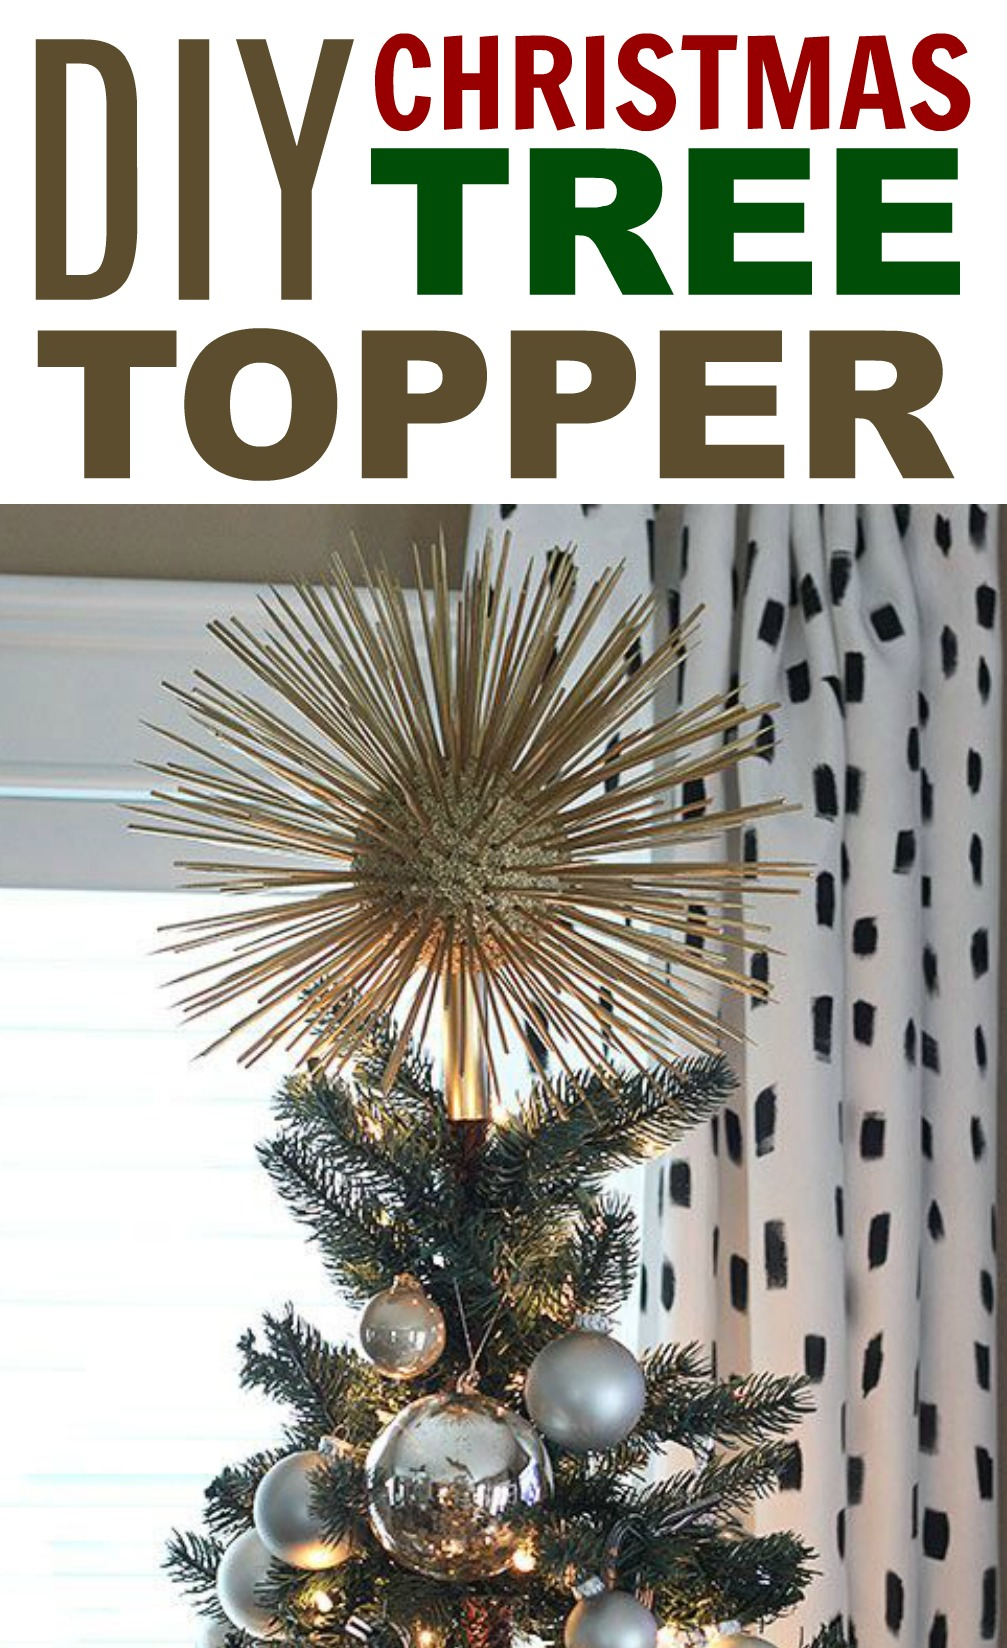 Diy Christmas Tree Topper A Little Craft In Your Day